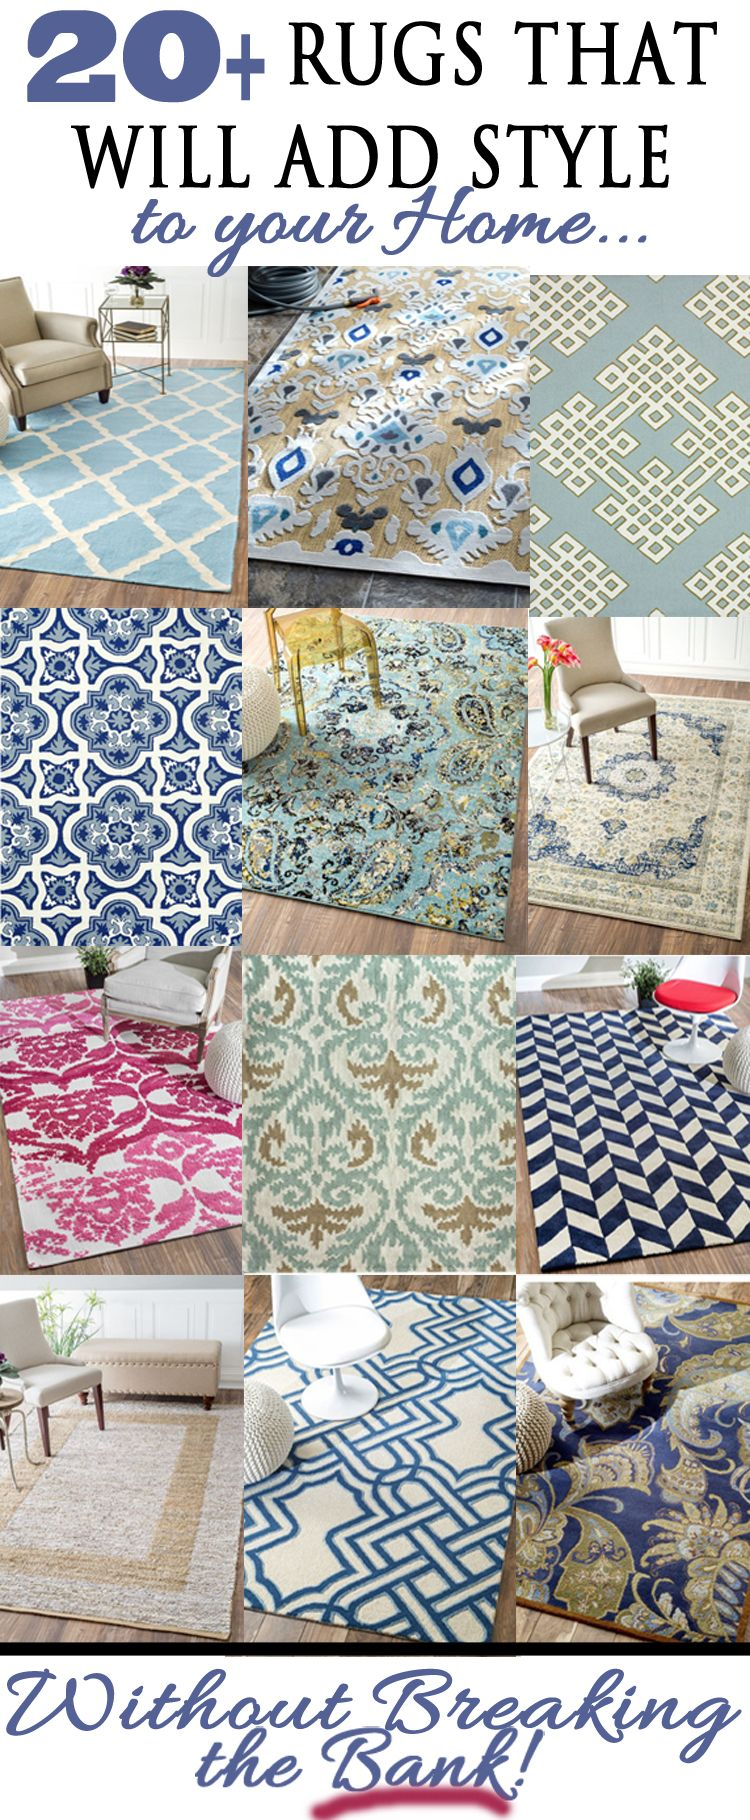 Looking for the perfect rug?  Good chance you will find it here!  Love this collection!  Picked by Provident Home Design.